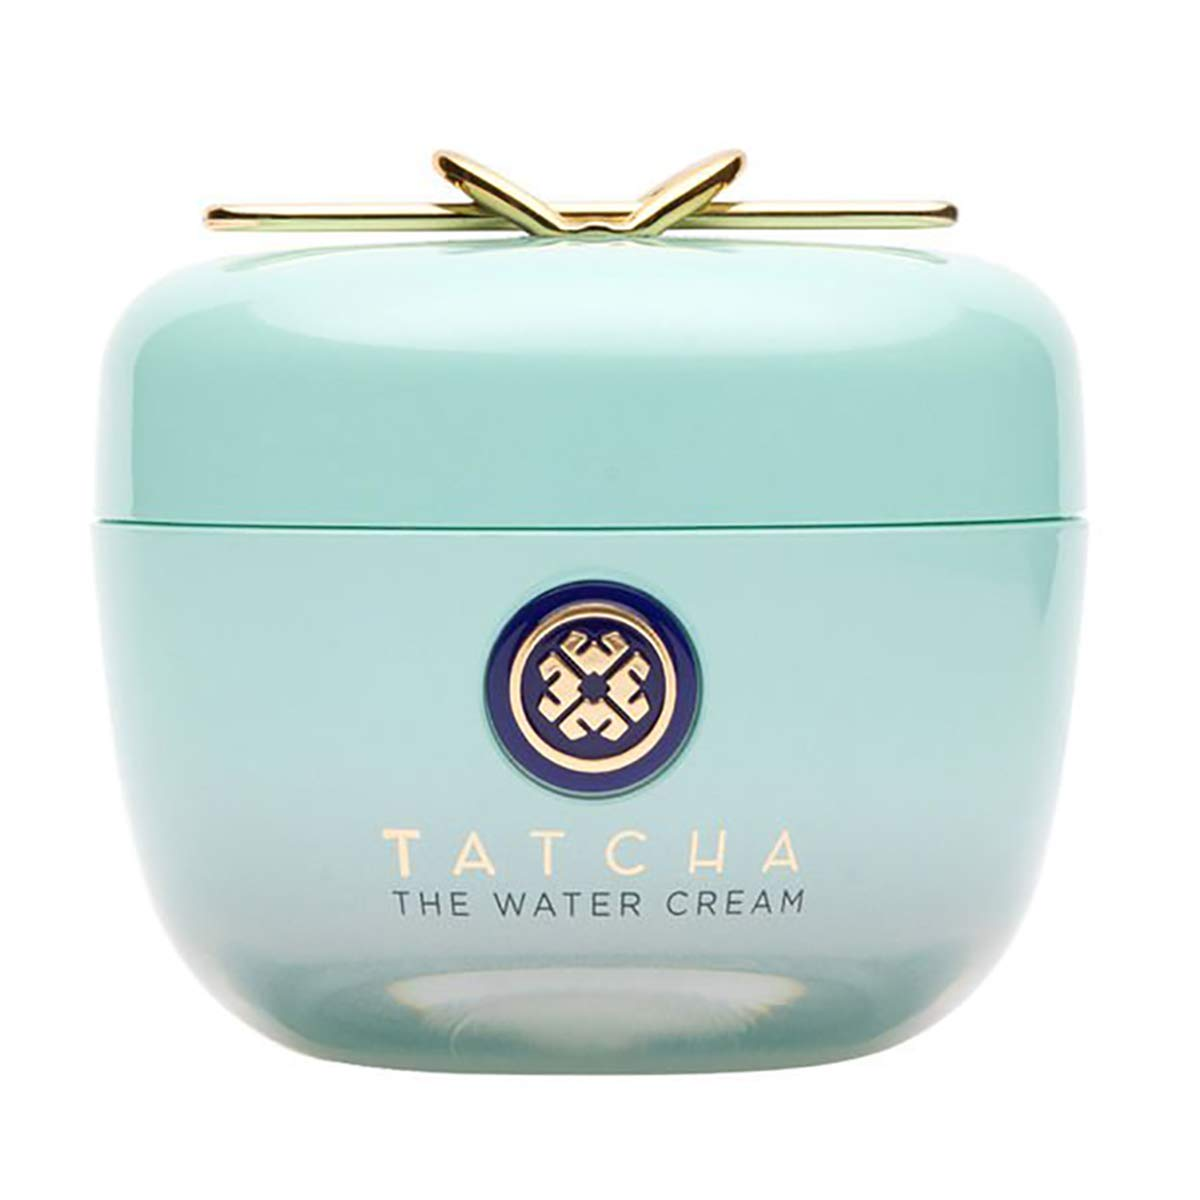 Tatcha The Water Cream - 50 milliliters / 1.7 ounces